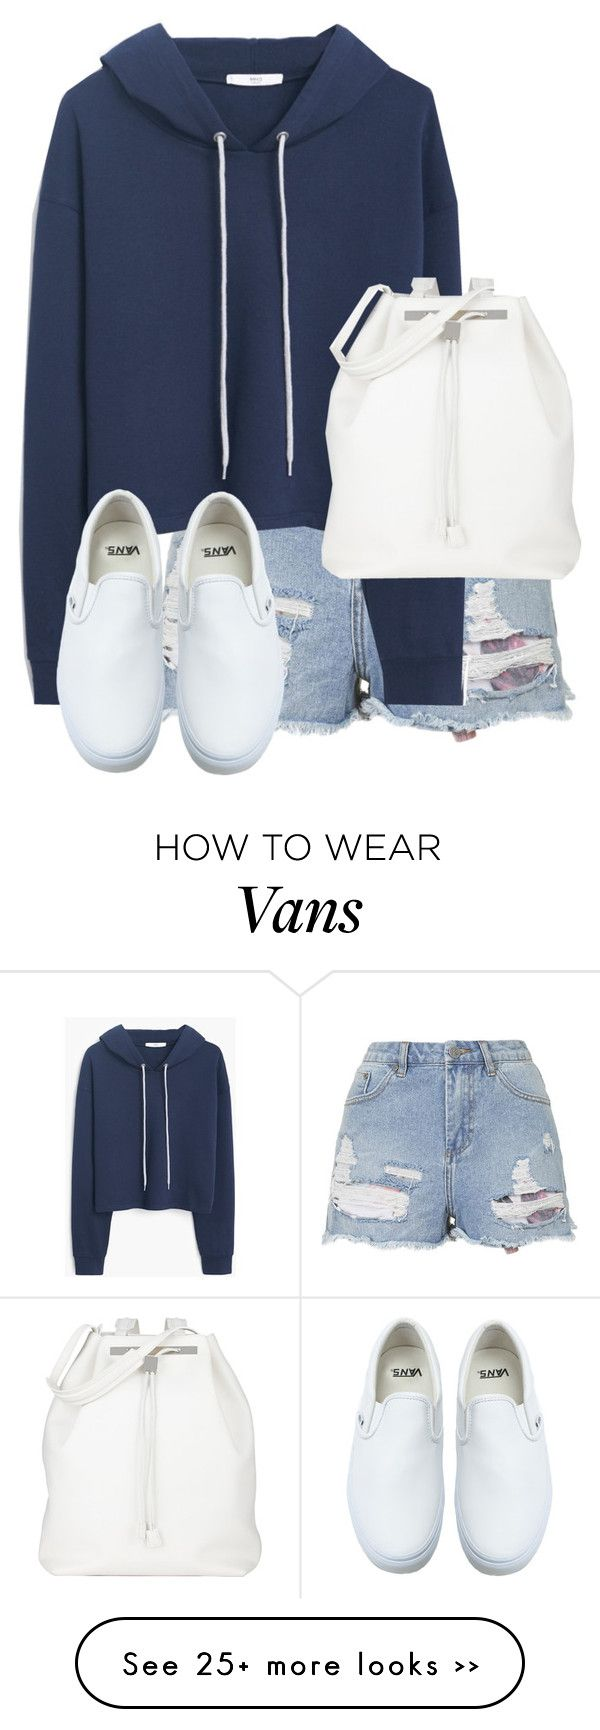 """Untitled #9204"" by alexsrogers on Polyvore"